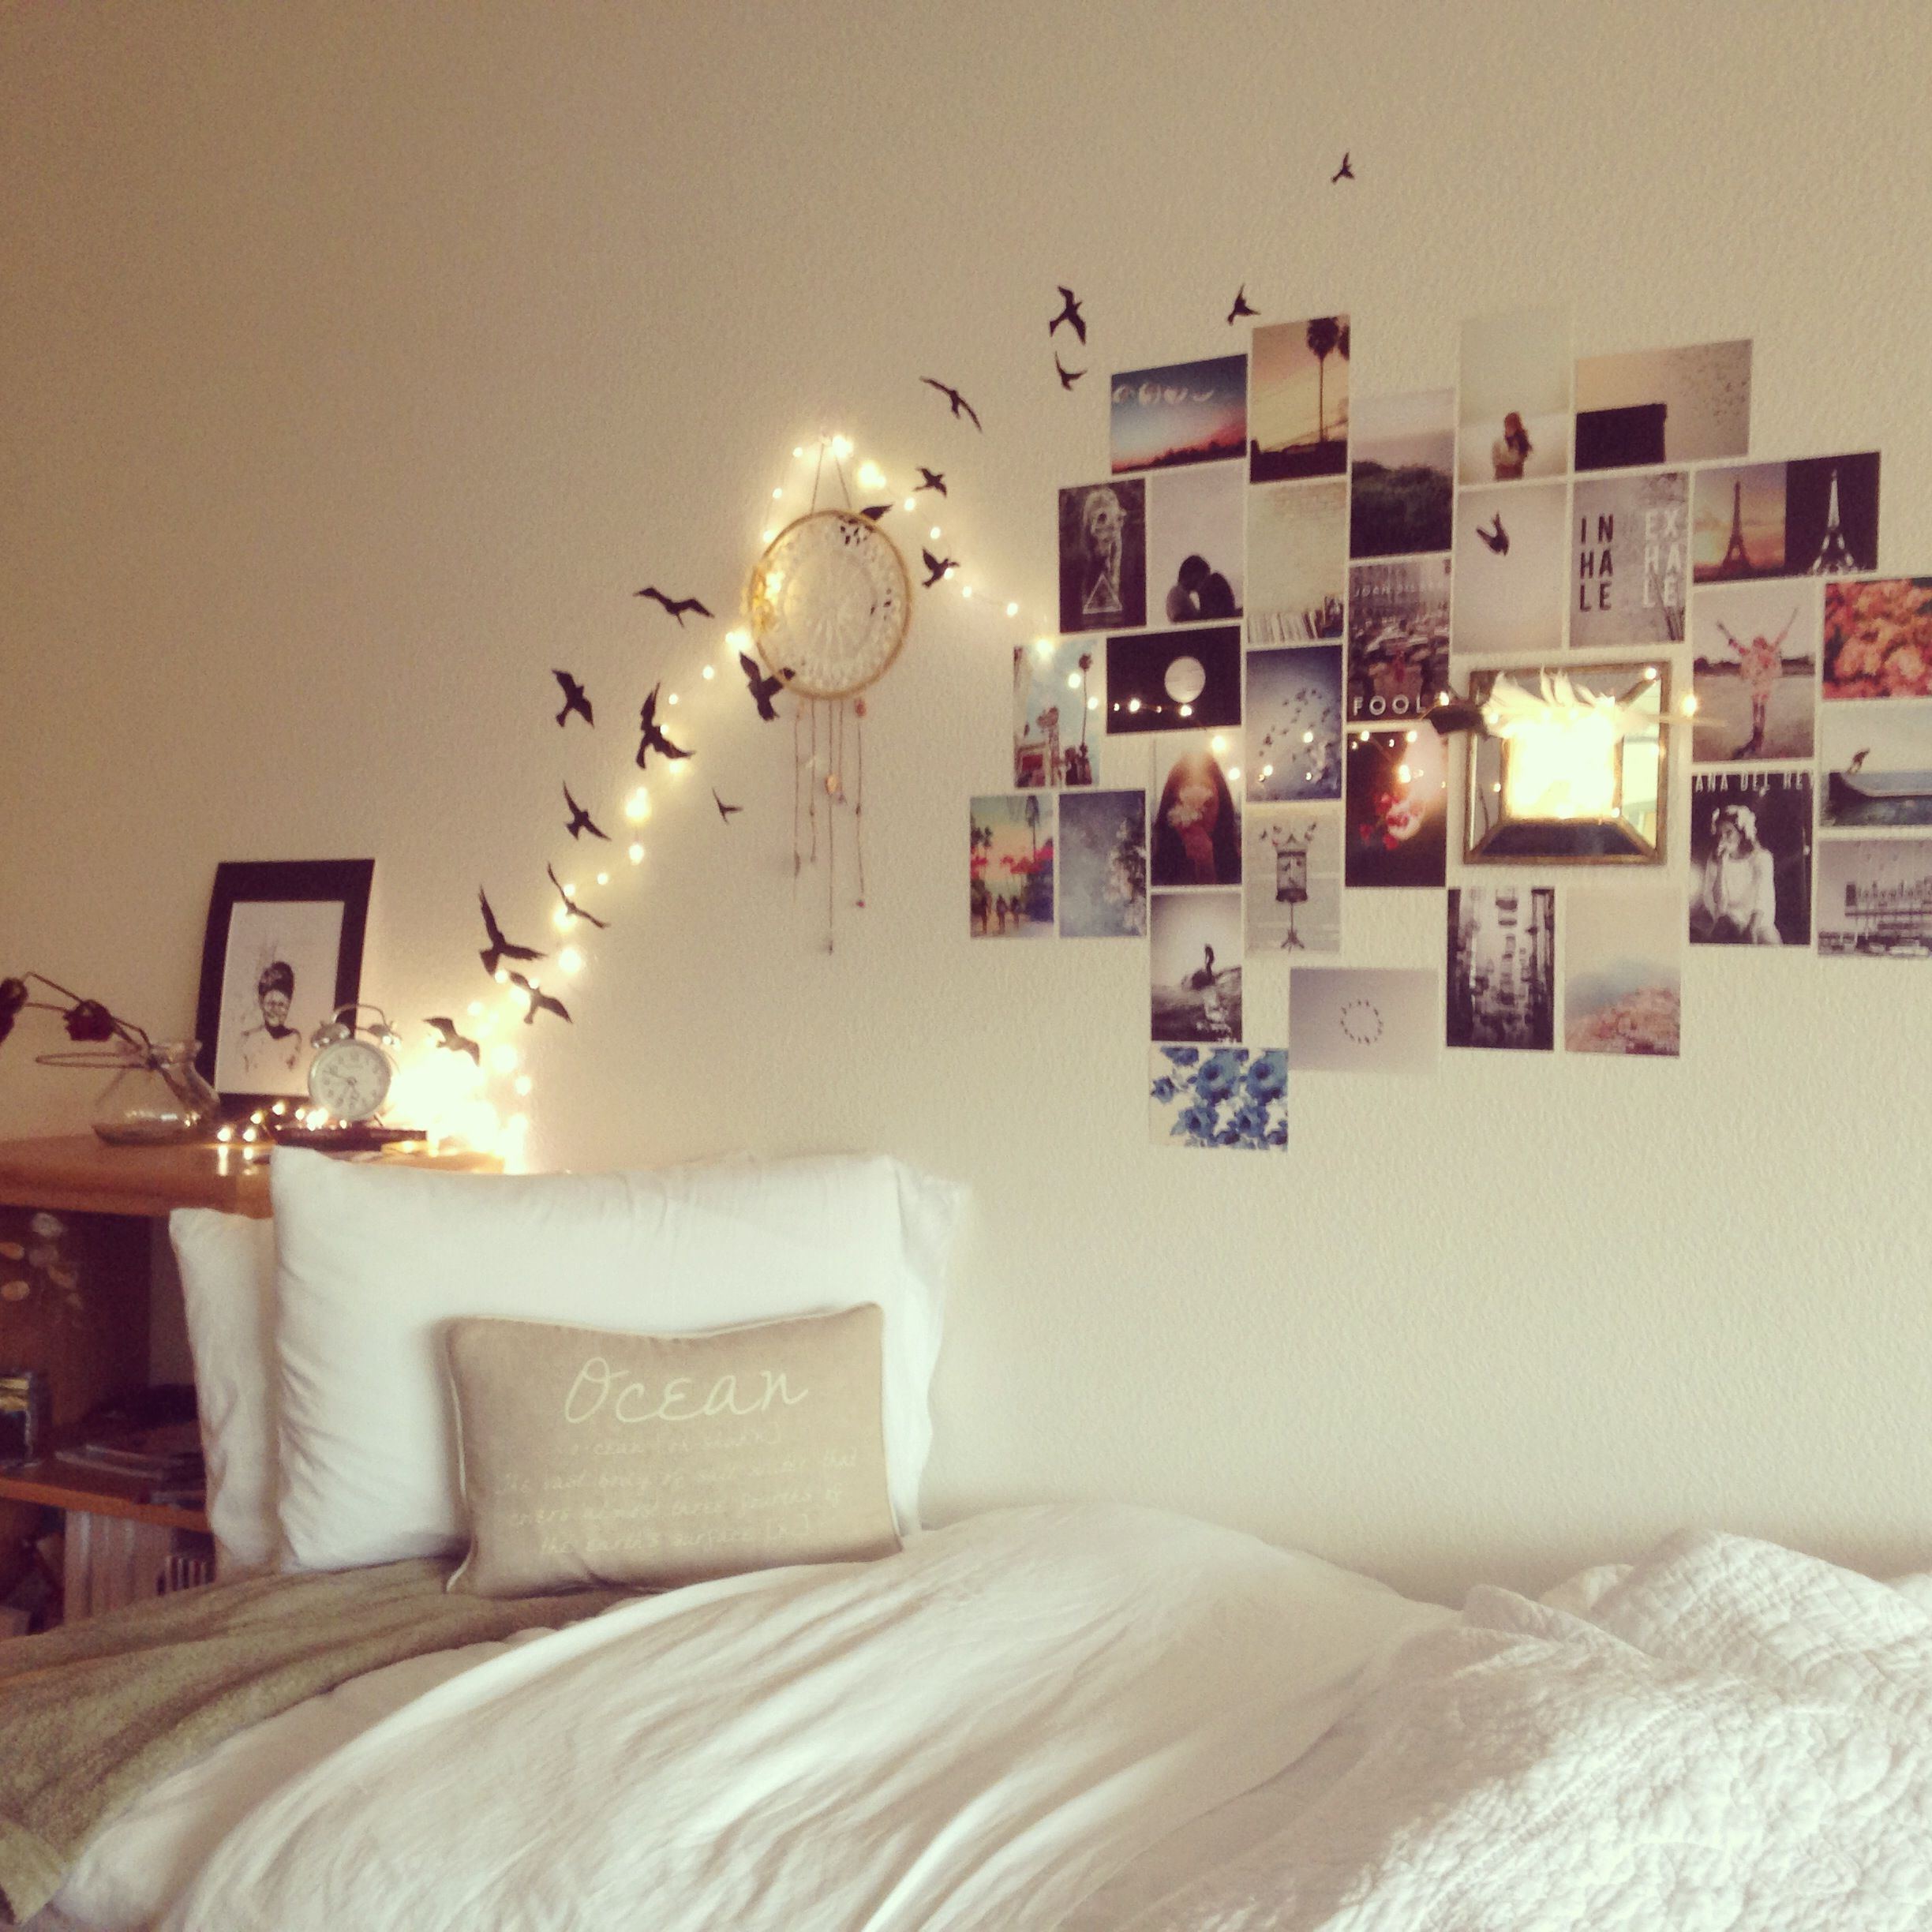 Dorm decor lights - Print Out And Hang Up Favorite Photos From Tumblr Internet If I Can Find